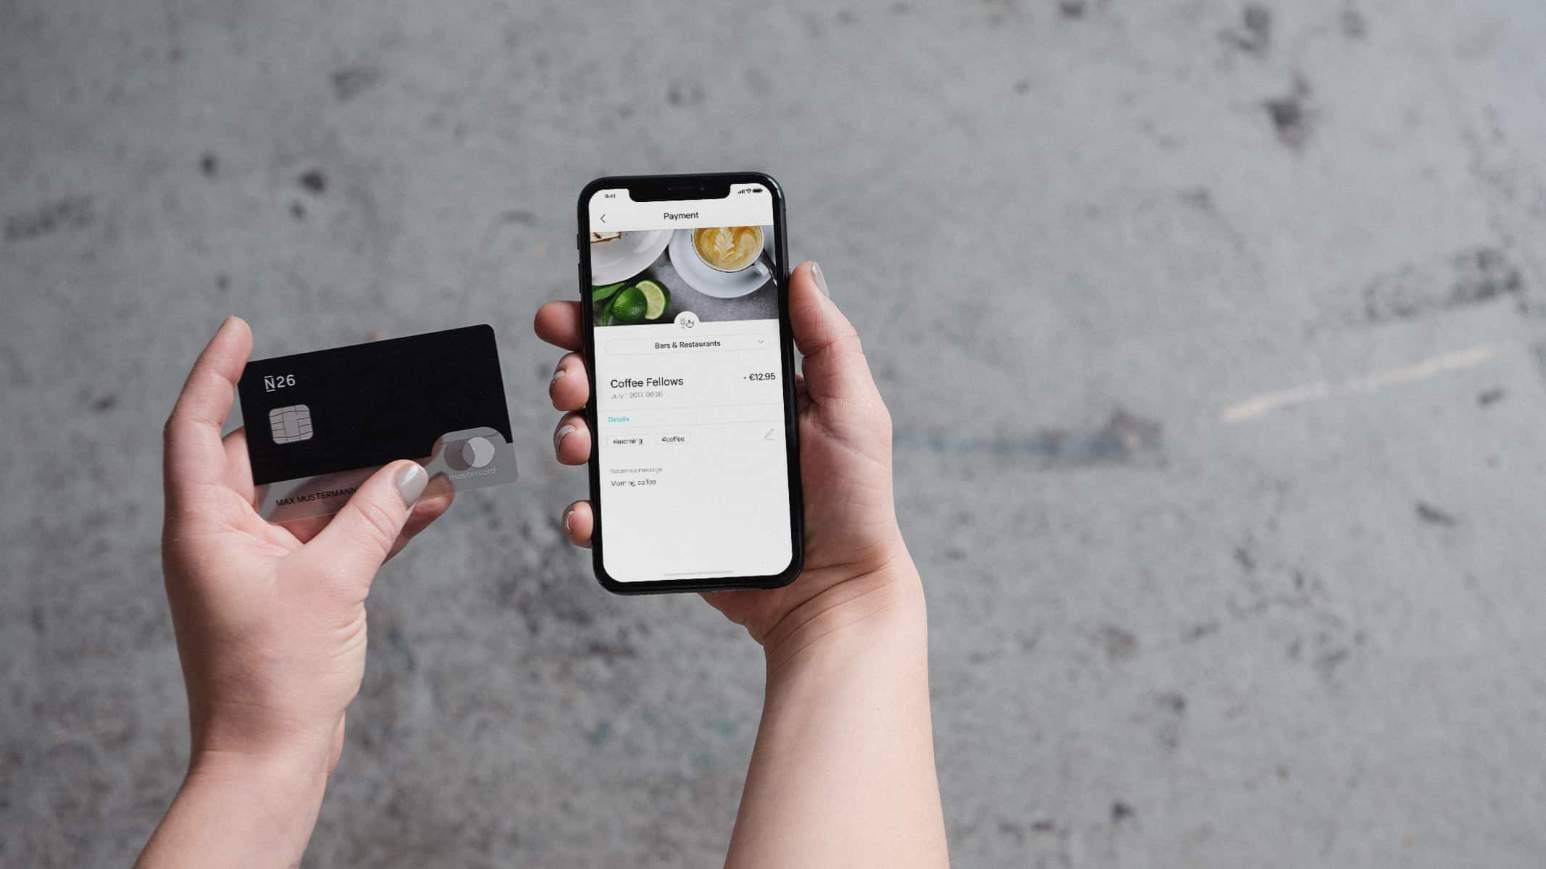 Many Revolut users are switching to N26 to take advantage of their free ATM withdrawals worldwide.